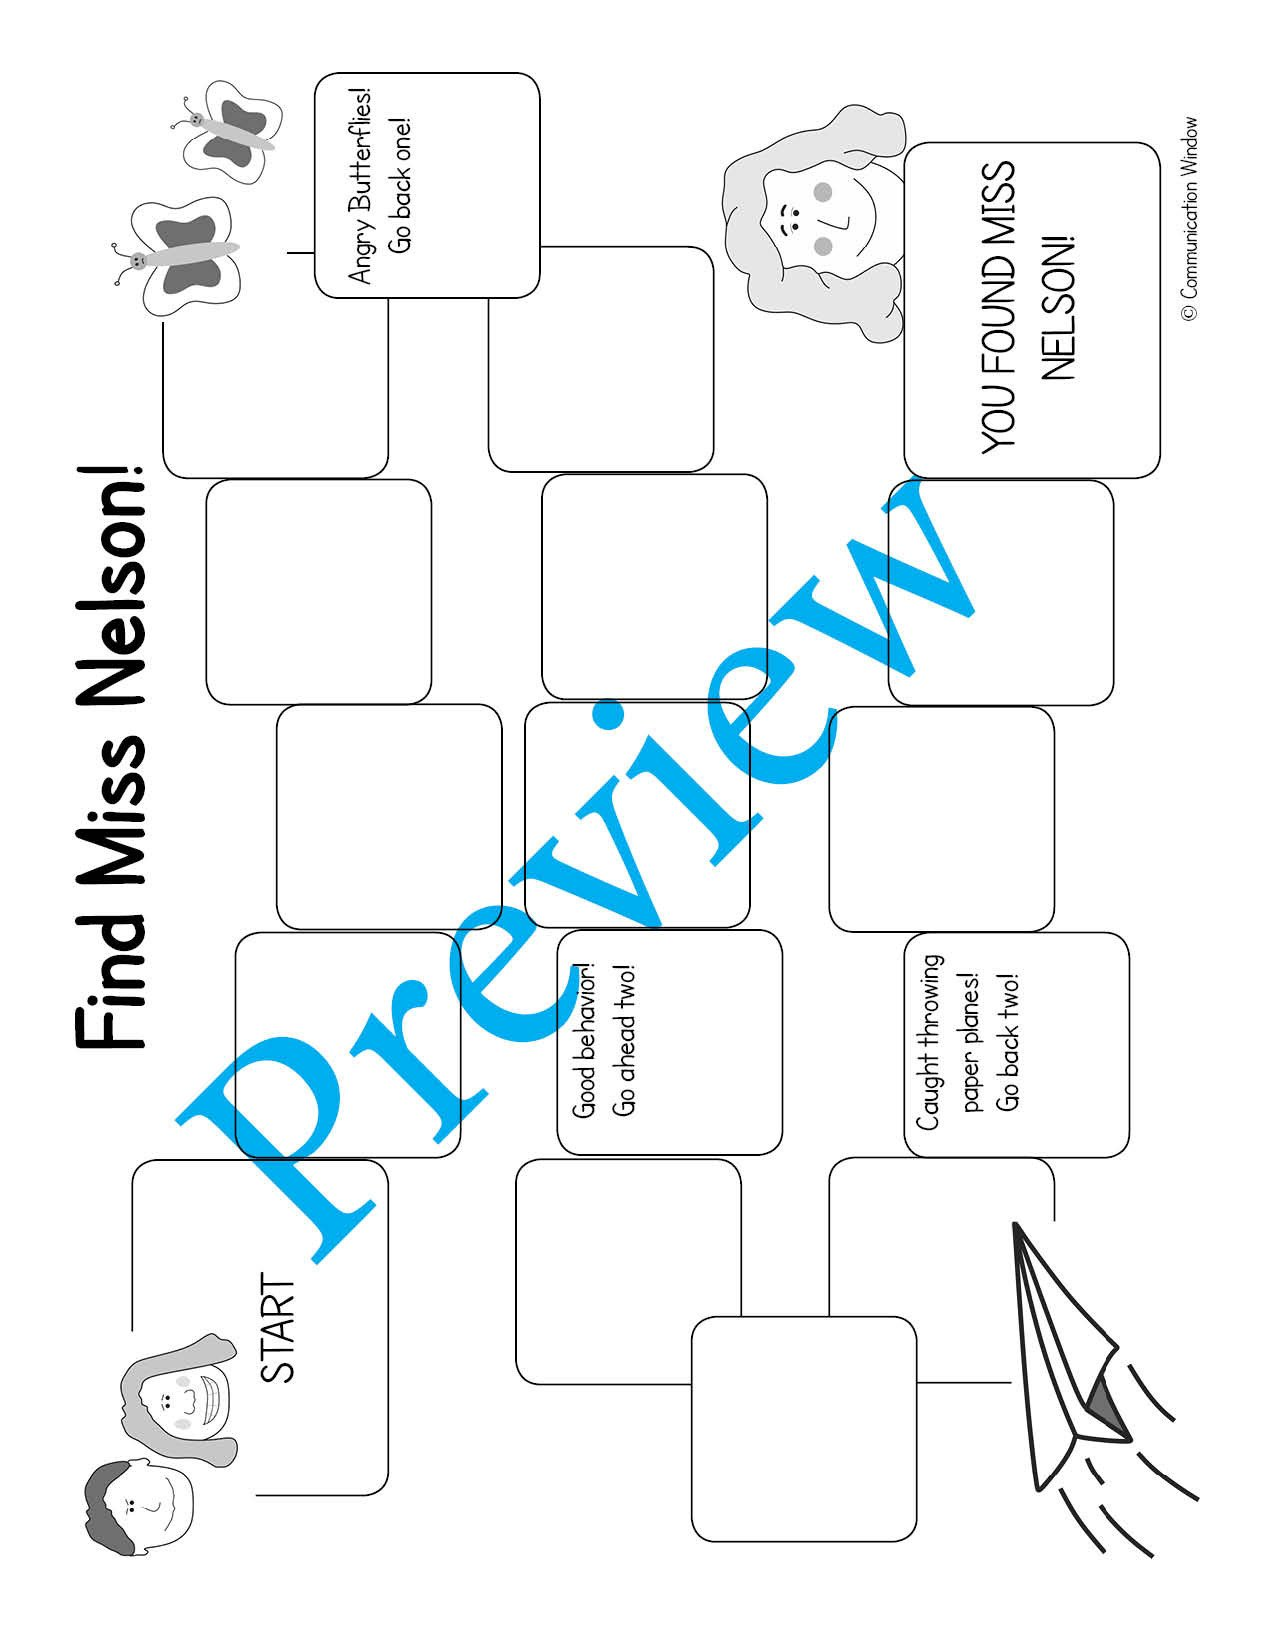 miss nelson game board preview watermark